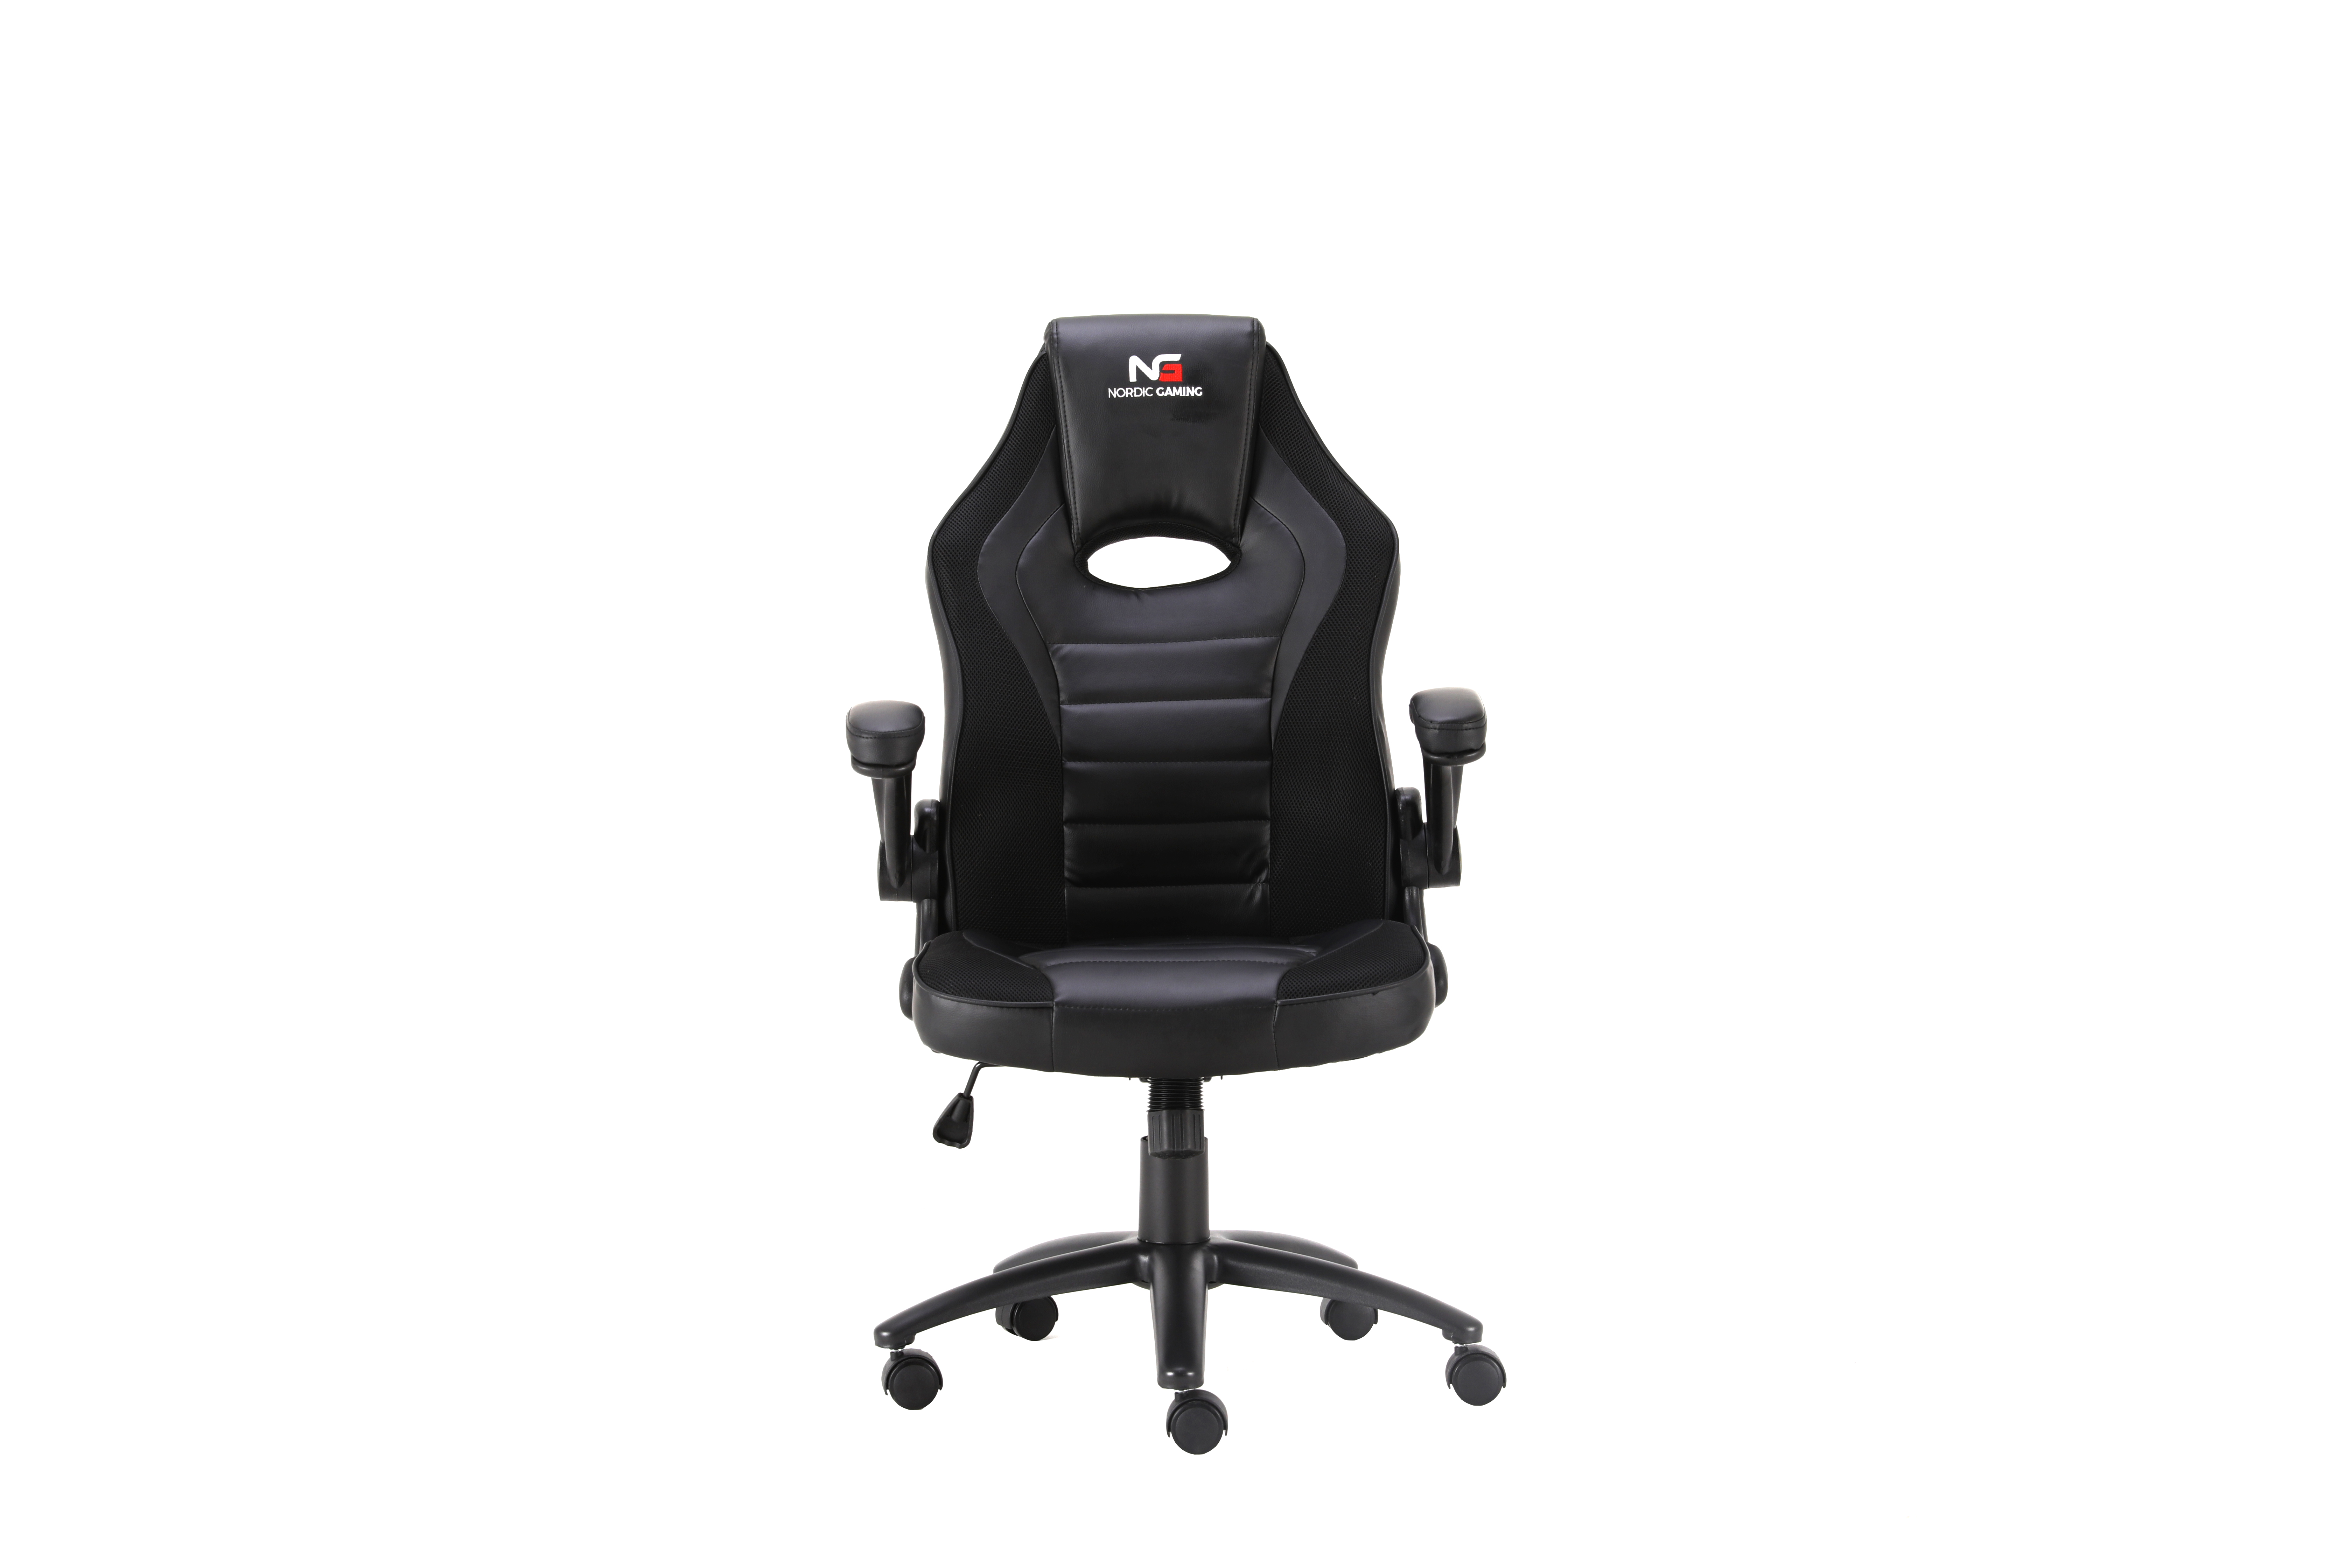 Nordic Gaming Charger V2 Gaming Chair Black